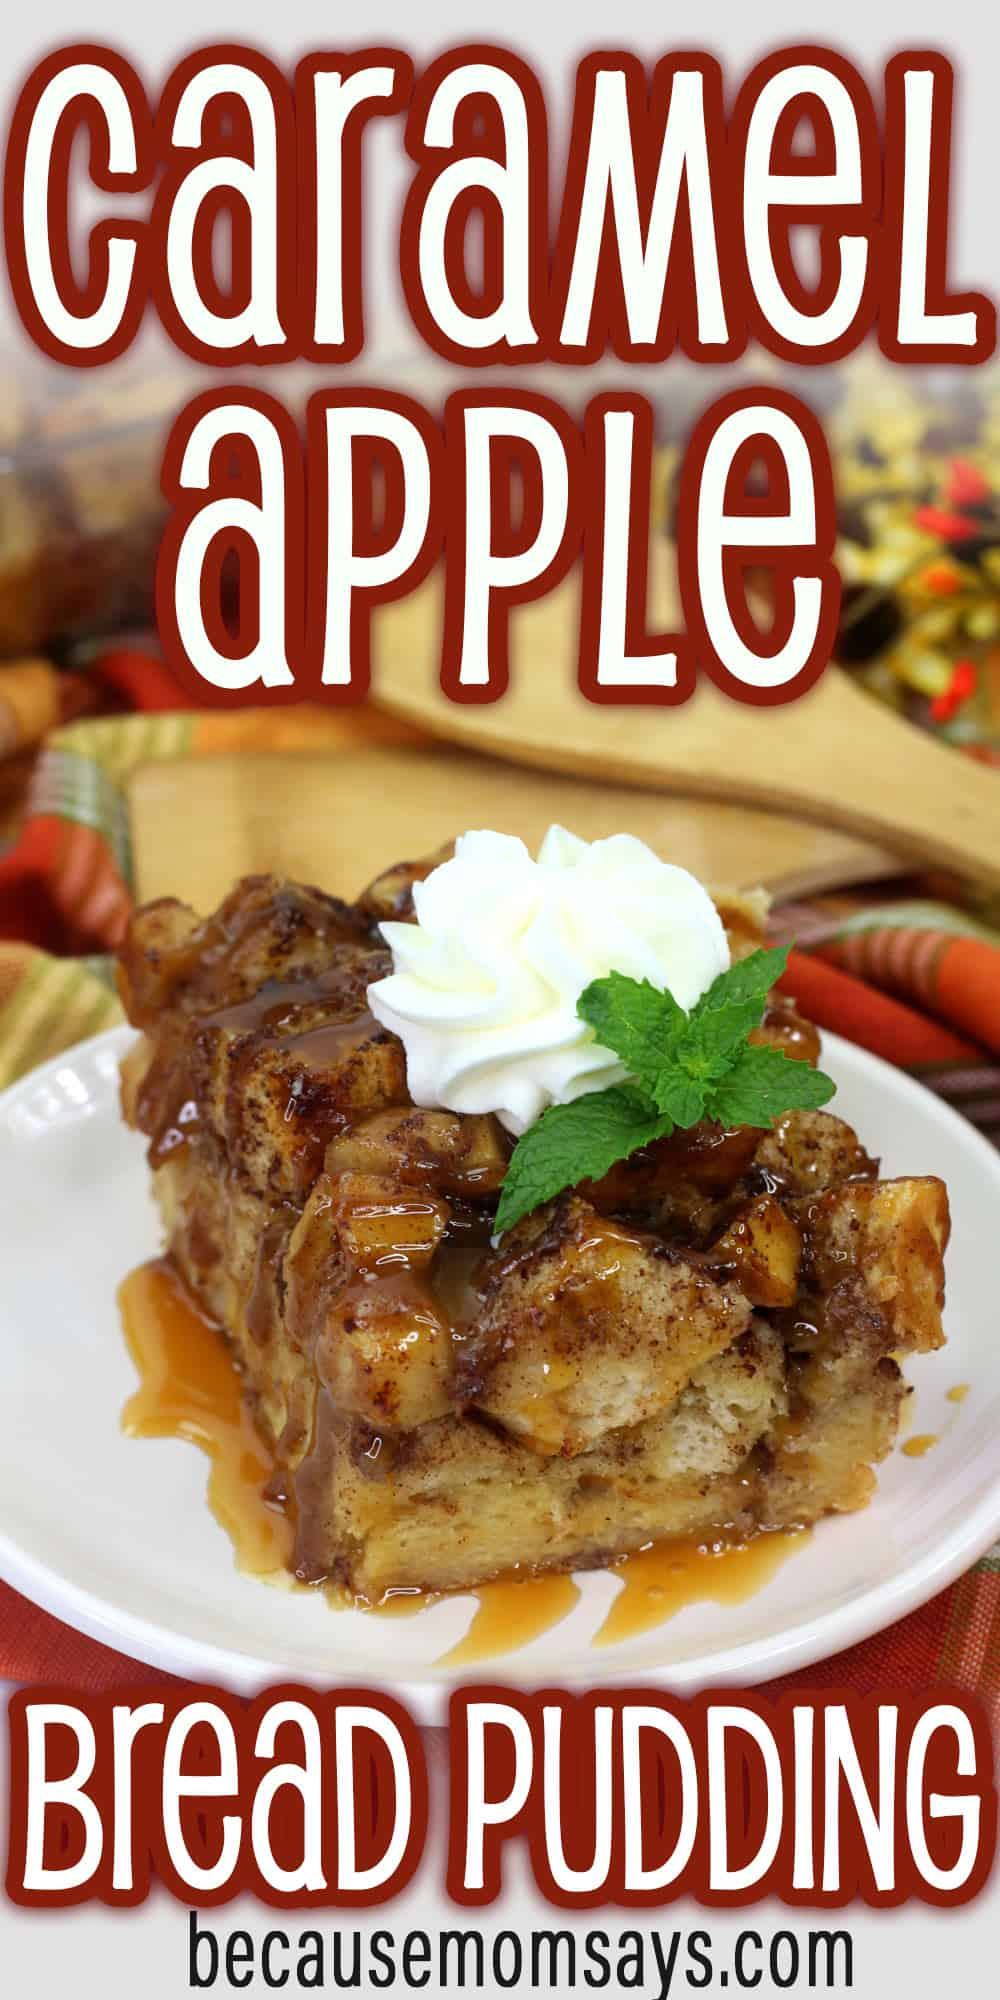 Caramel Apple Bread Pudding on white plate